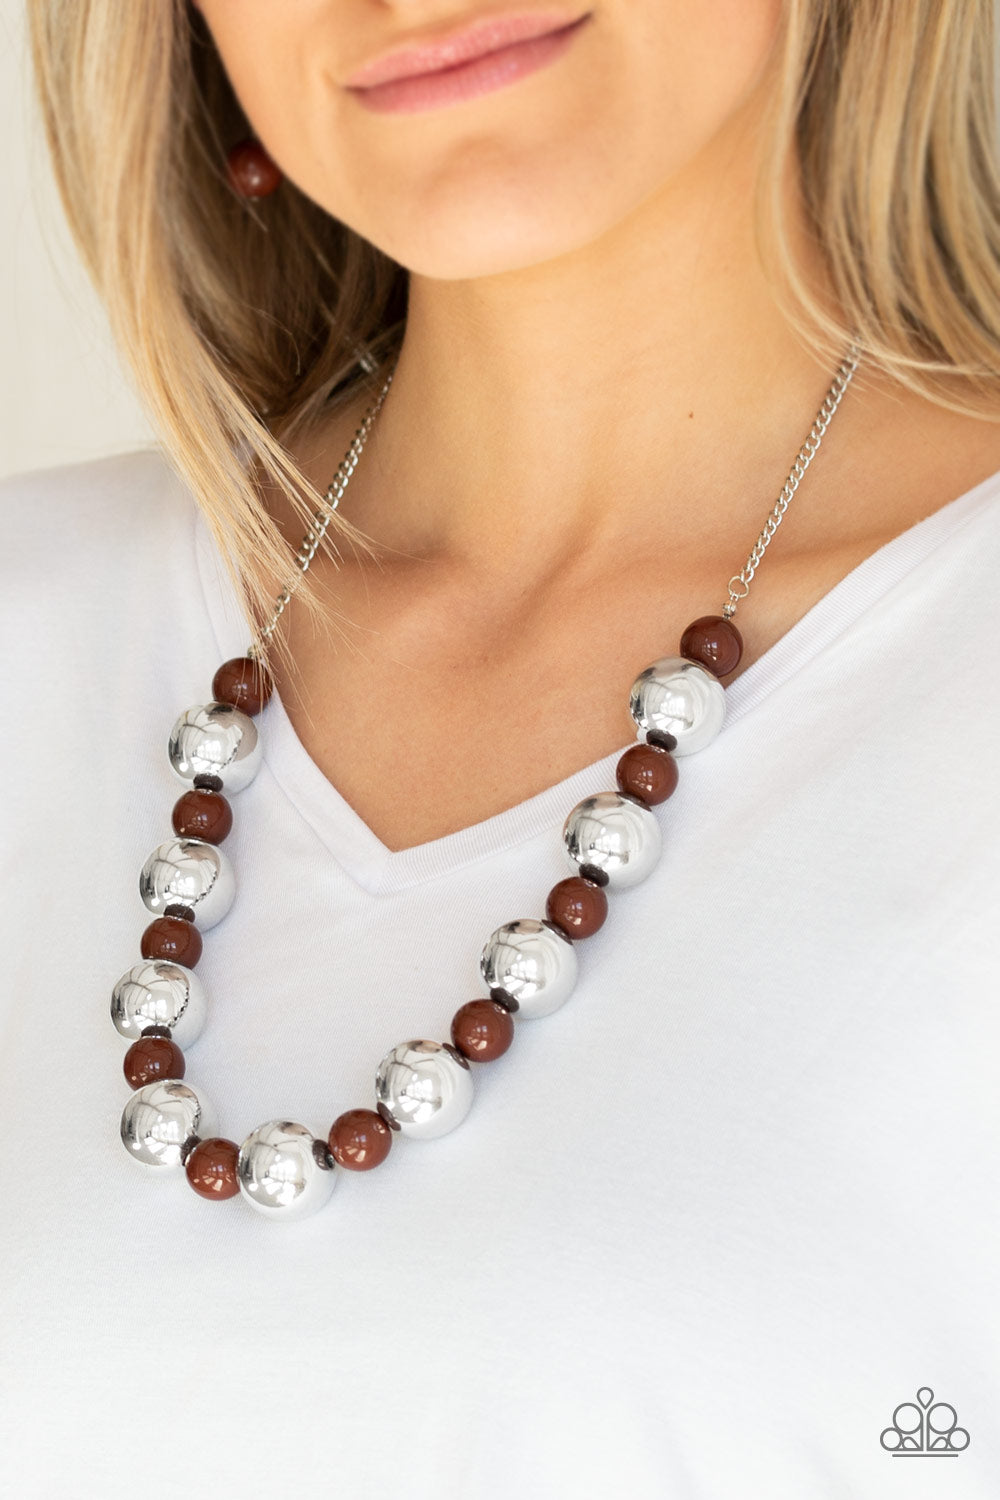 Paparazzi - Top Pop - Brown Necklace Set - Classy Jewels by Linda